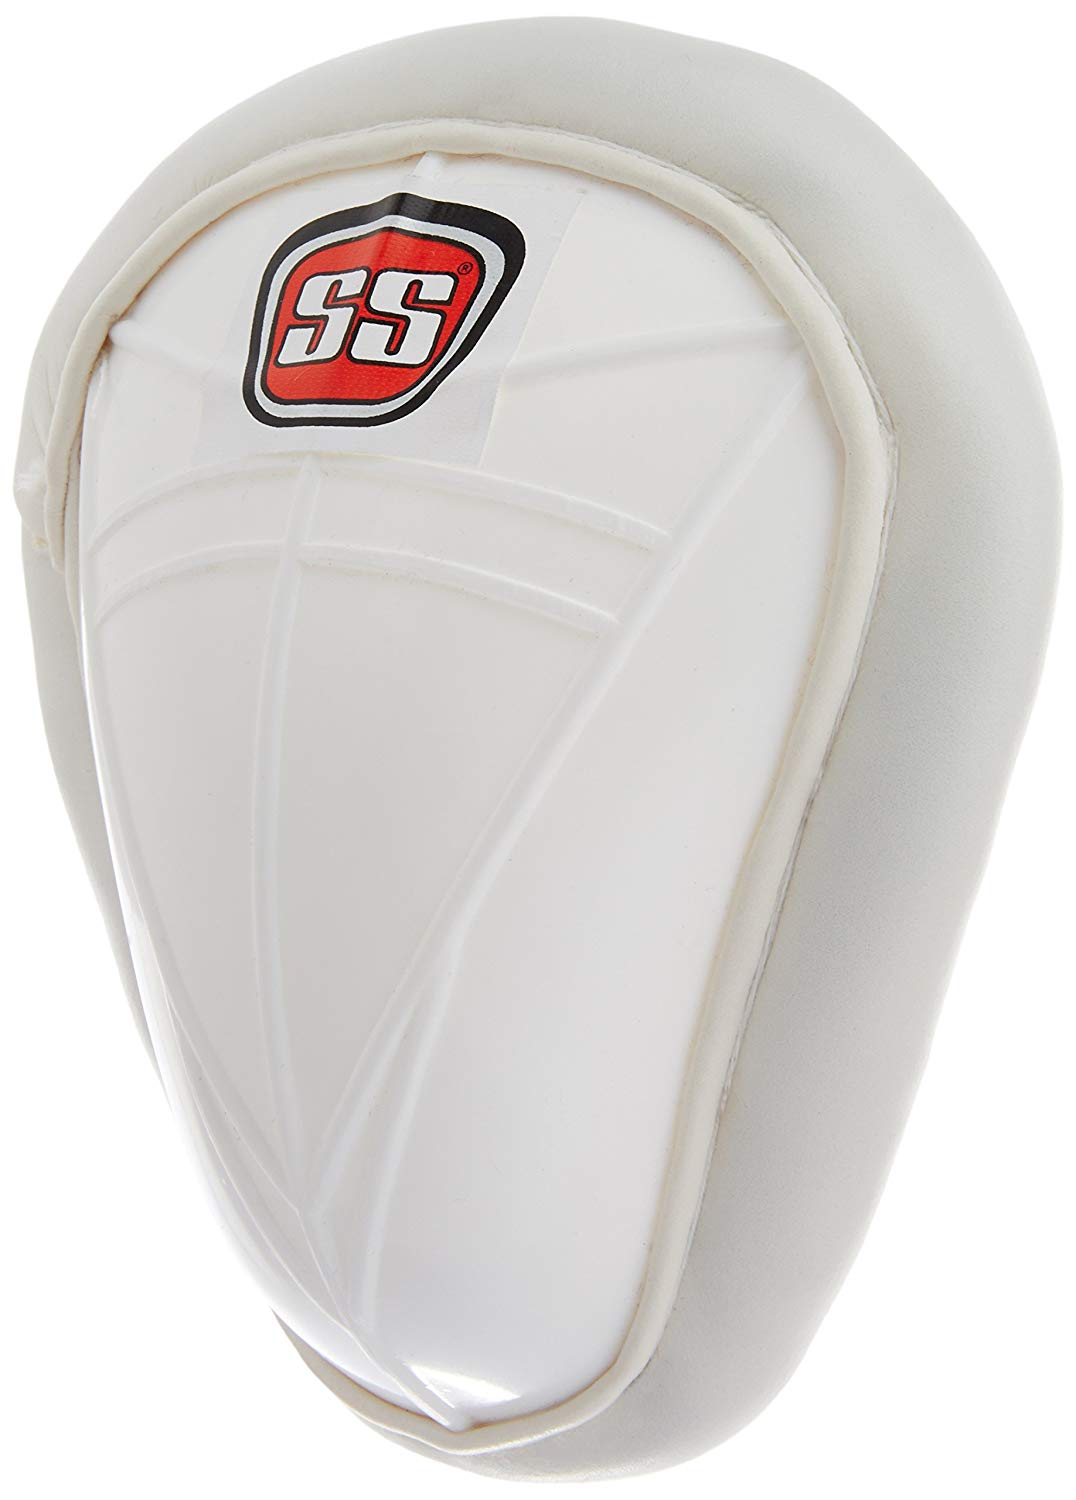 SS Abdominal Guard Ranji - Pack For 2